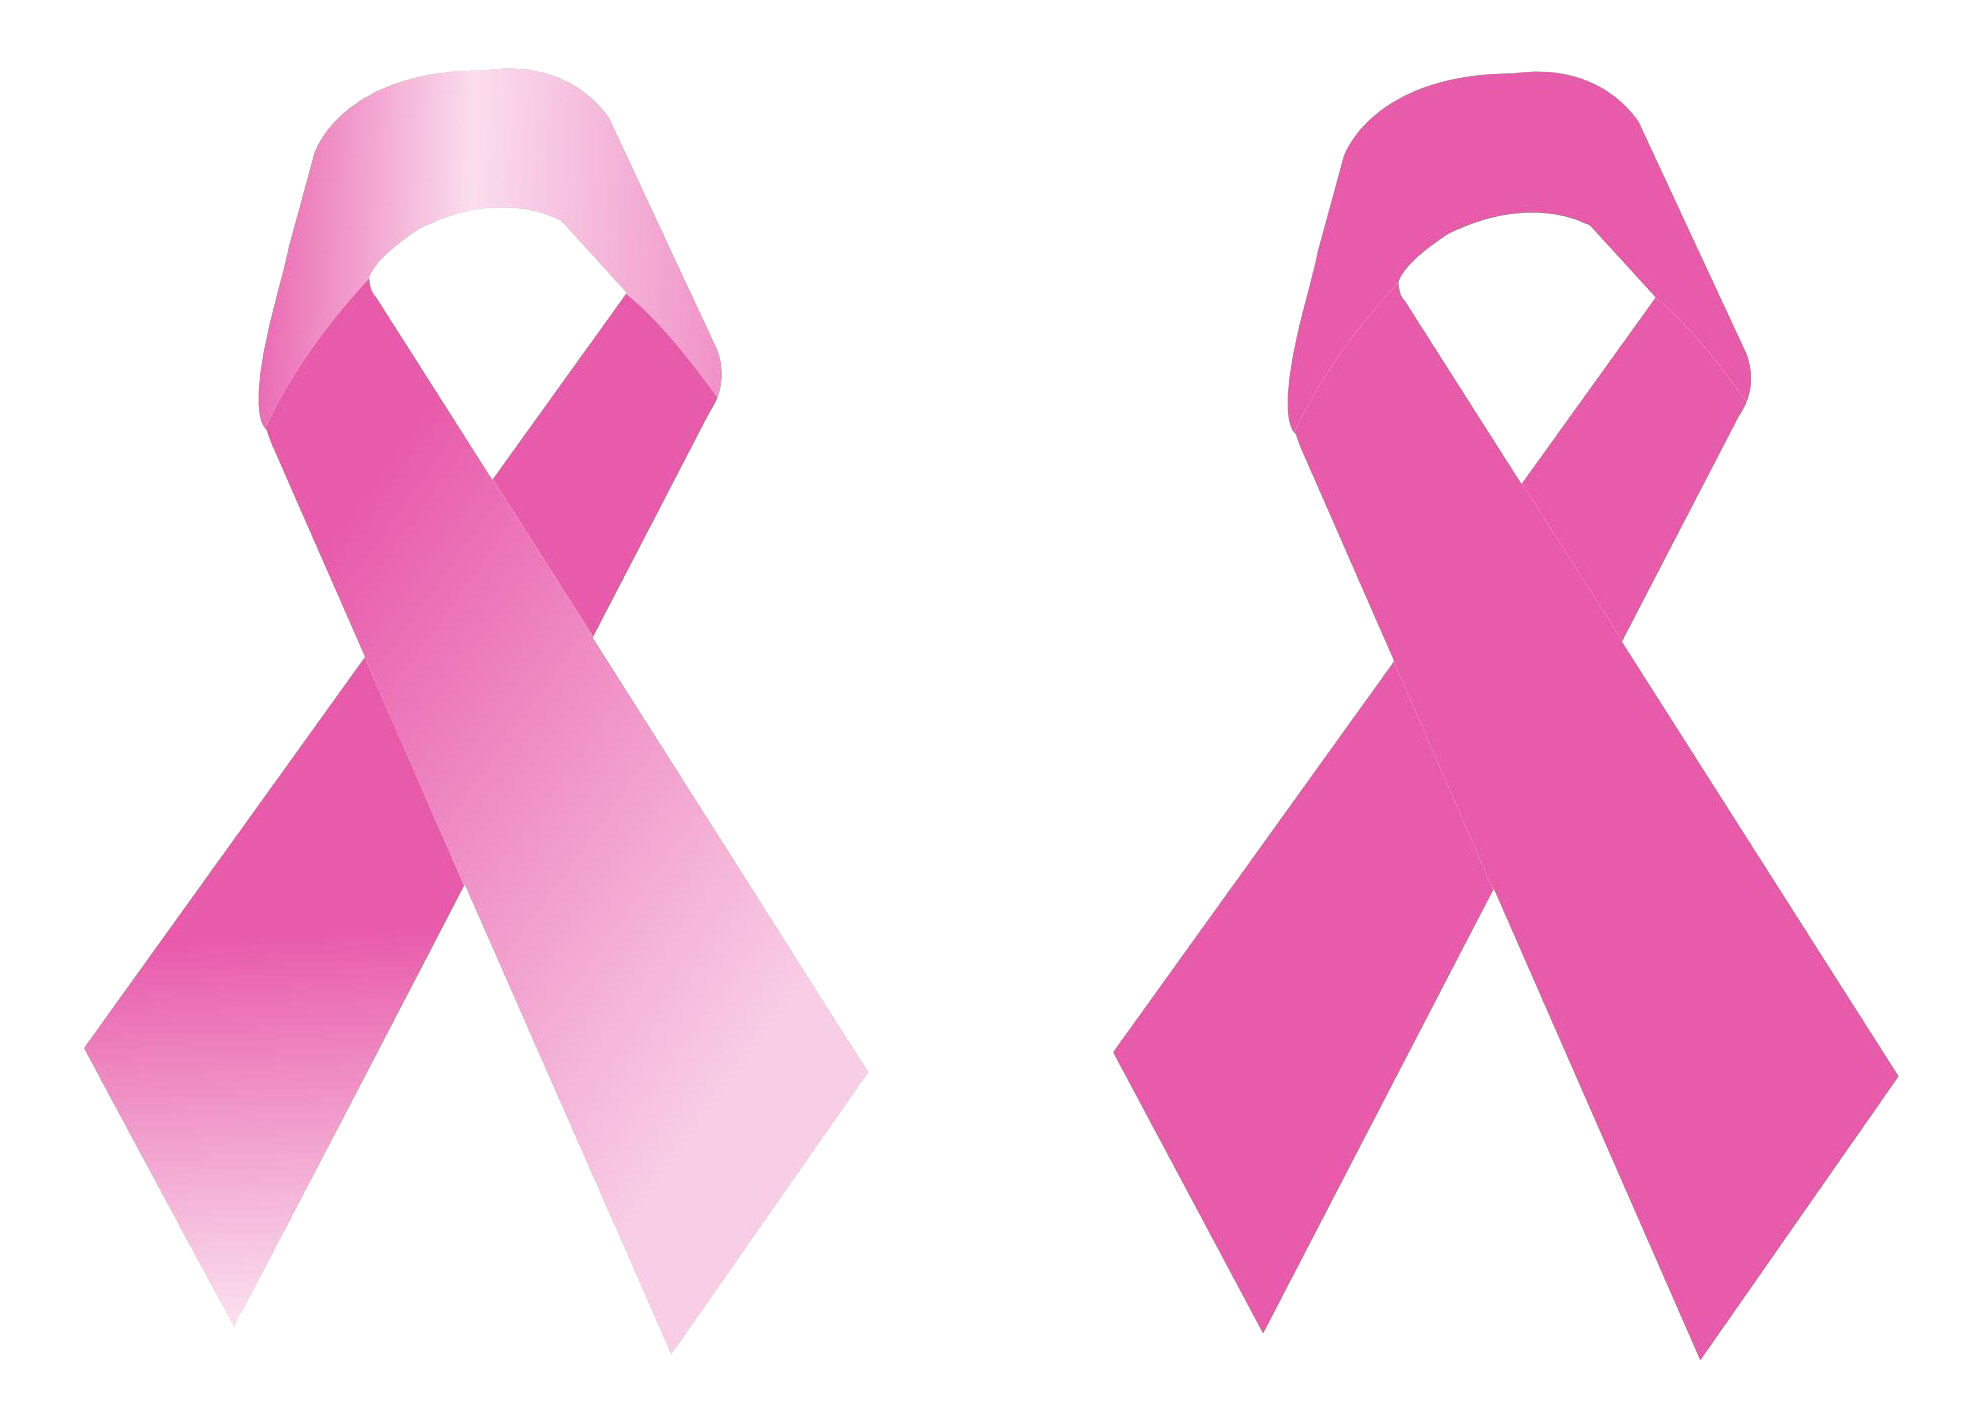 Breast cancer ribbon cross clipart image free download Pink Ribbon Clipart at GetDrawings.com | Free for personal use Pink ... image free download